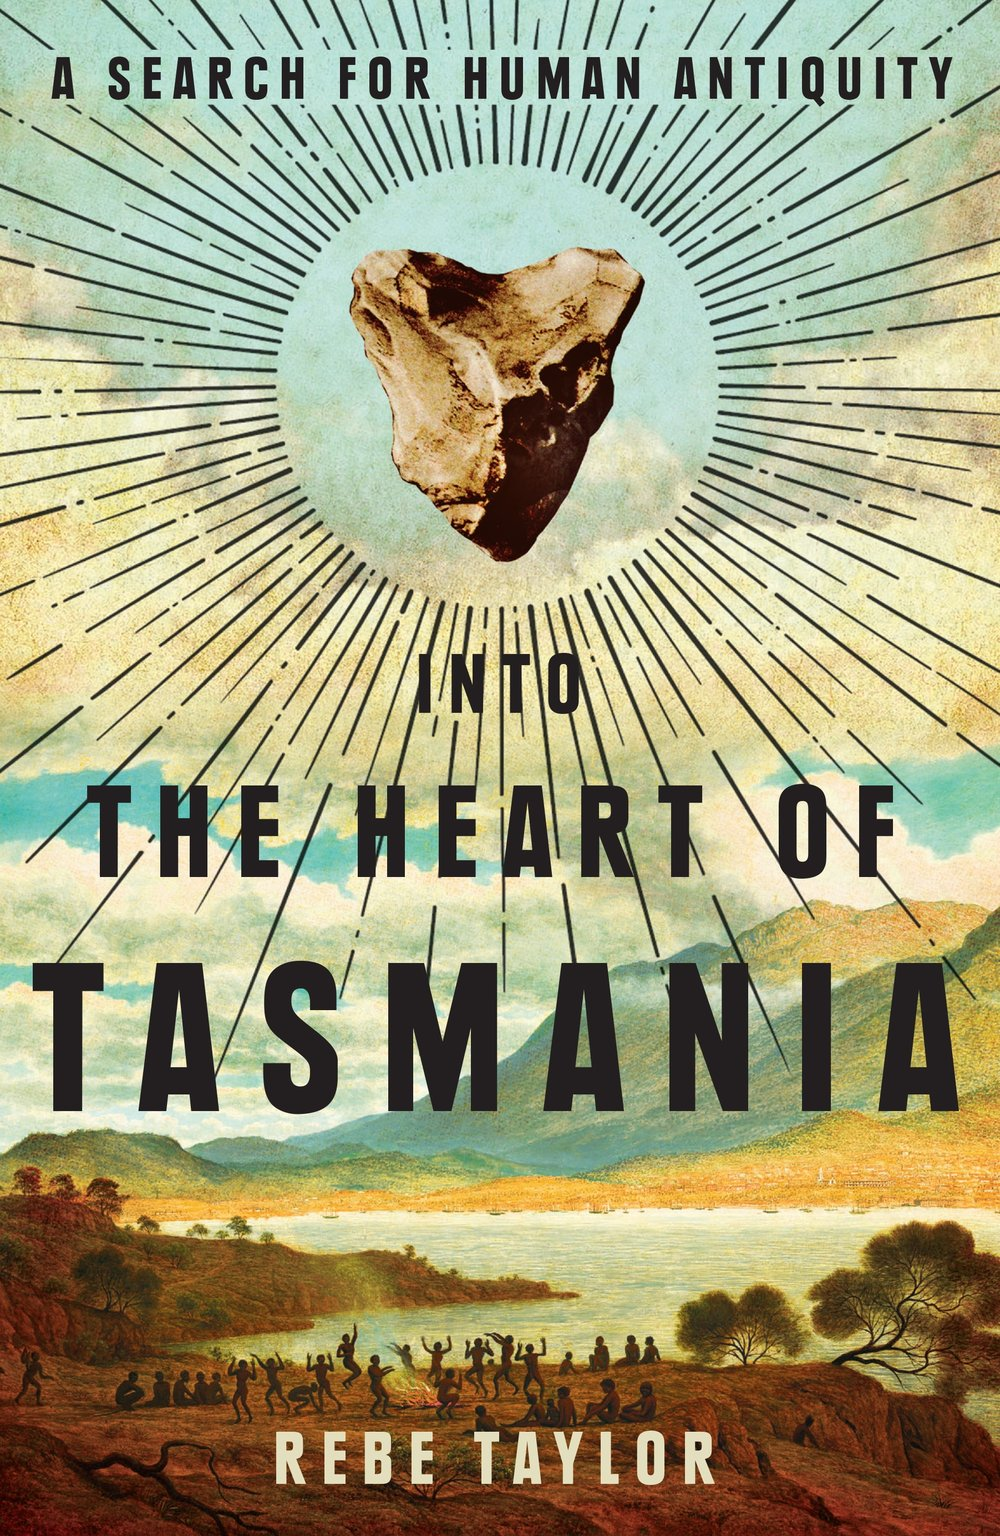 INTO THE HEART OF TASMANIA – REBE TAYLOR - One man's ambition to rewrite the history of human culture inspires an exploration of the controversy stirred by Tasmanian Aboriginal history.WINNER OF THE TASMANIA BOOK PRIZE